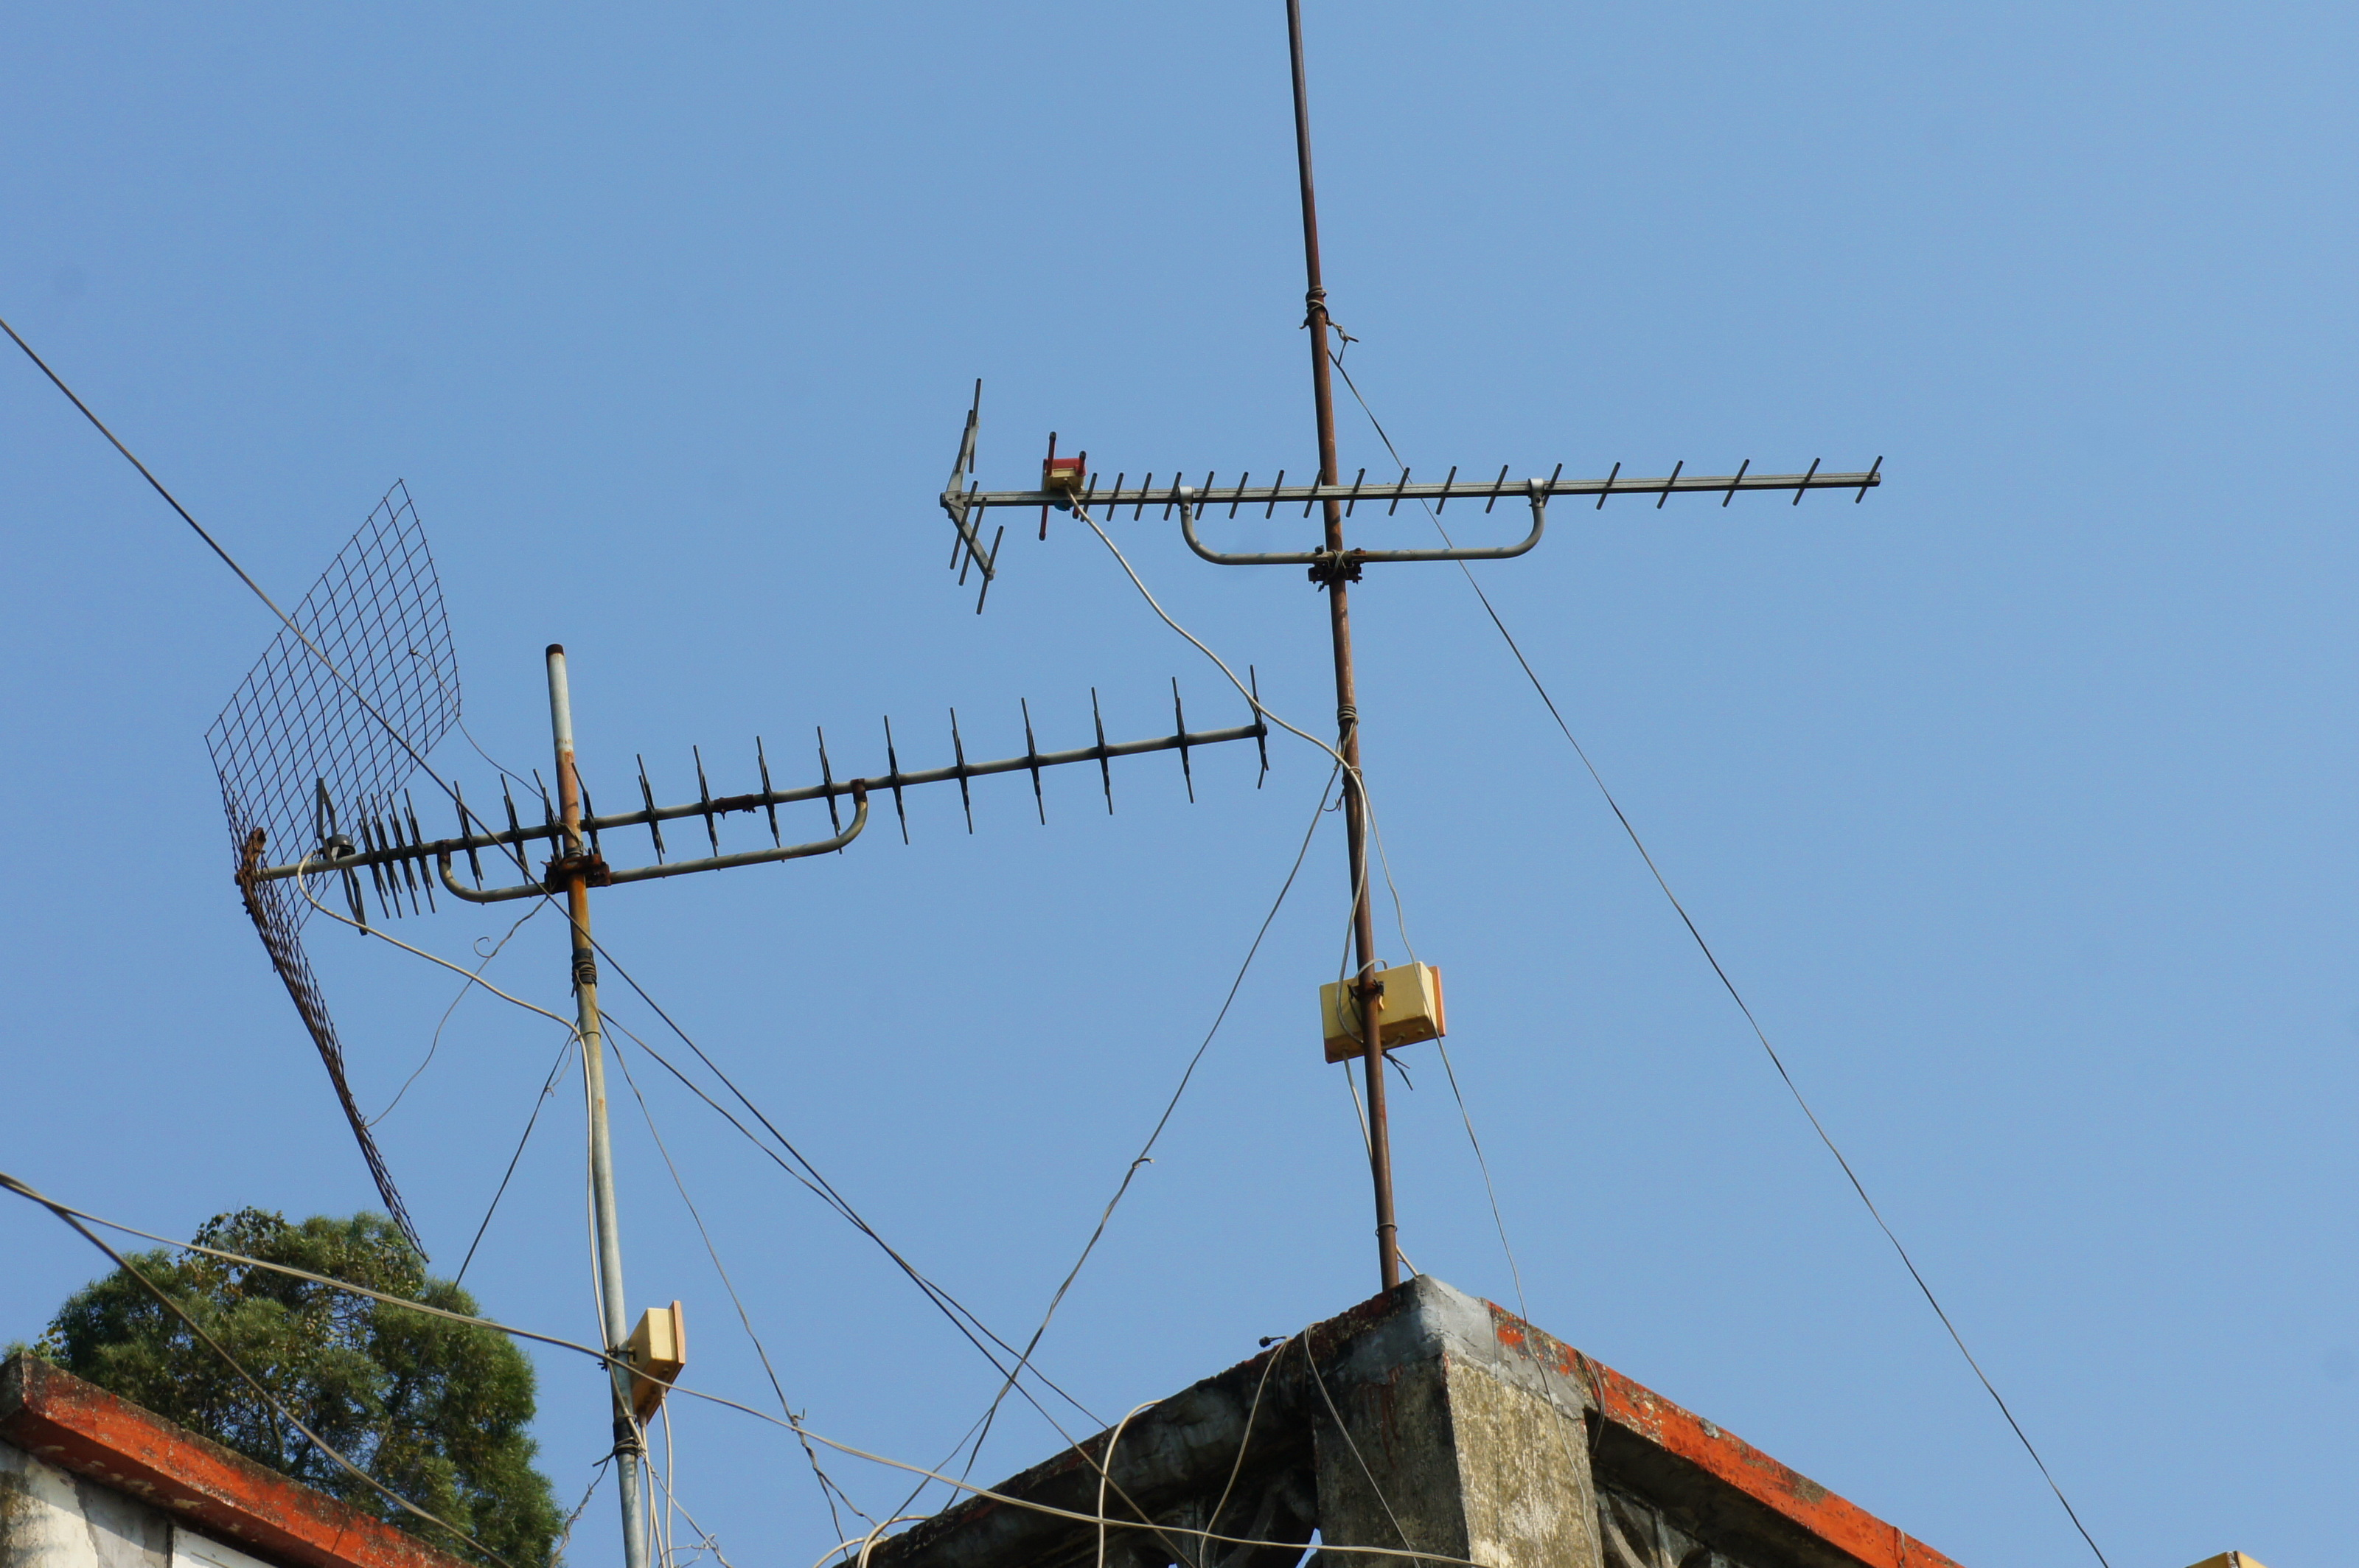 A pair of Yagi-Uda antennas on top of a roof, photo credit: https://commons.wikimedia.org/wiki/File:Yagi-Uda_antenna.JPG